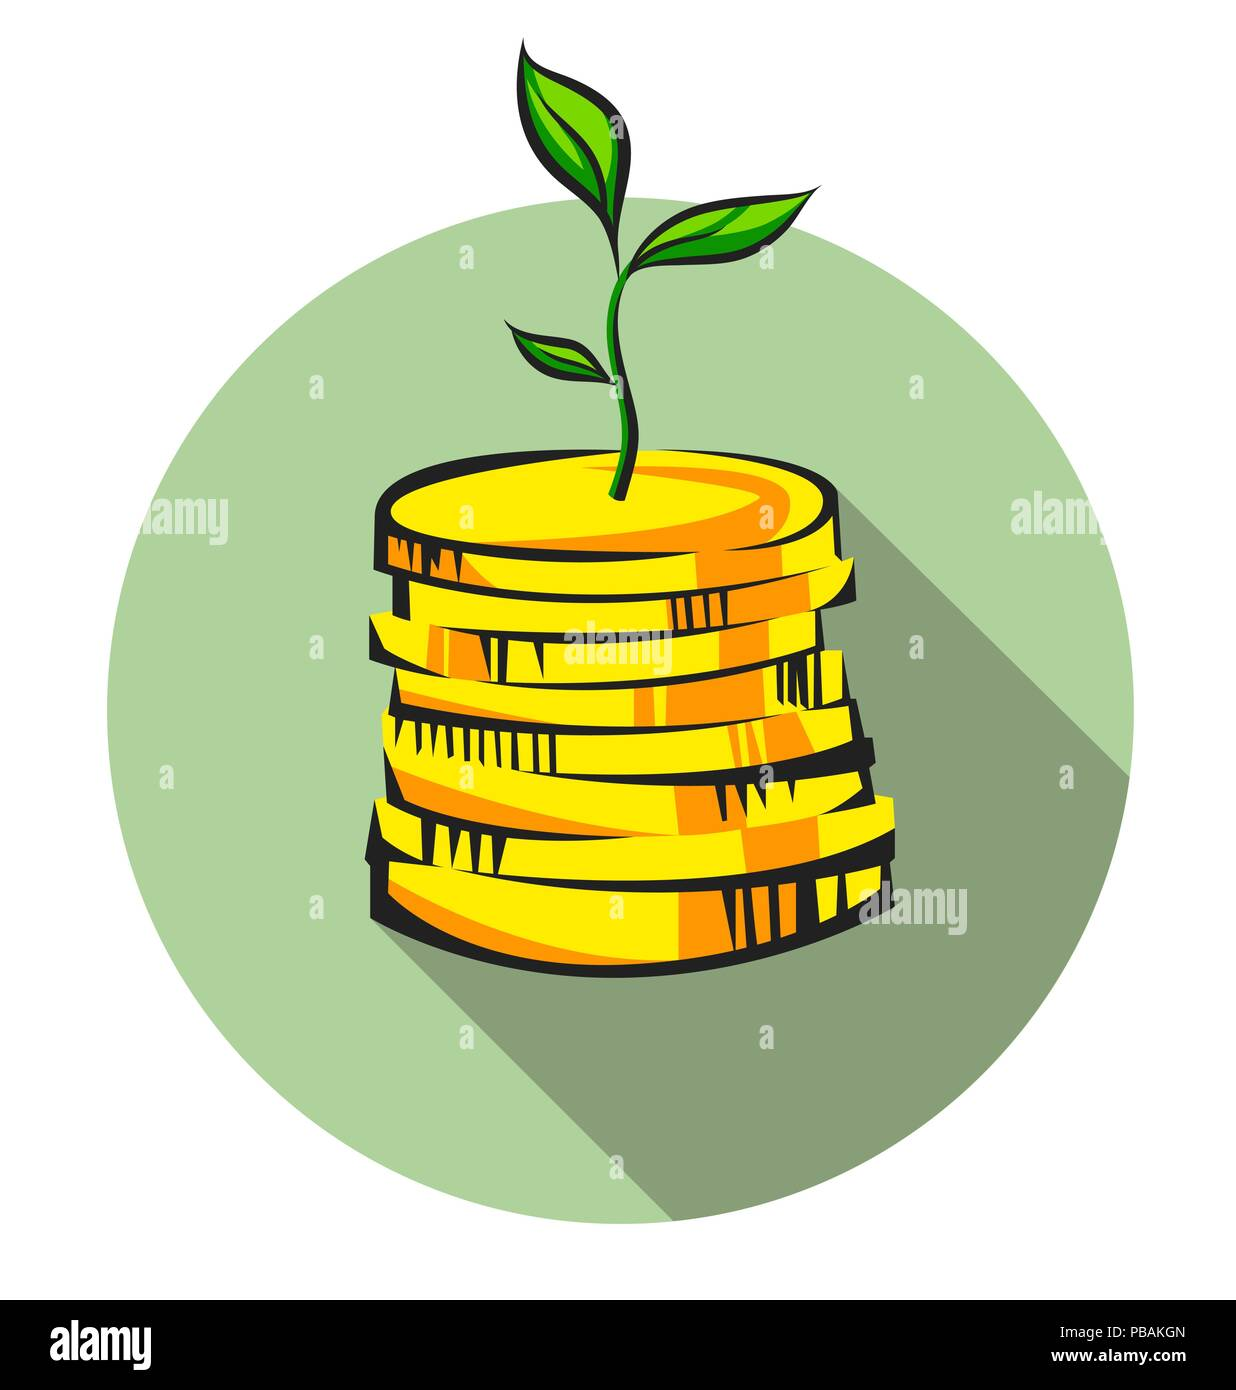 Money tree sprout grows from coins stack, pop art vector icon - Stock Image